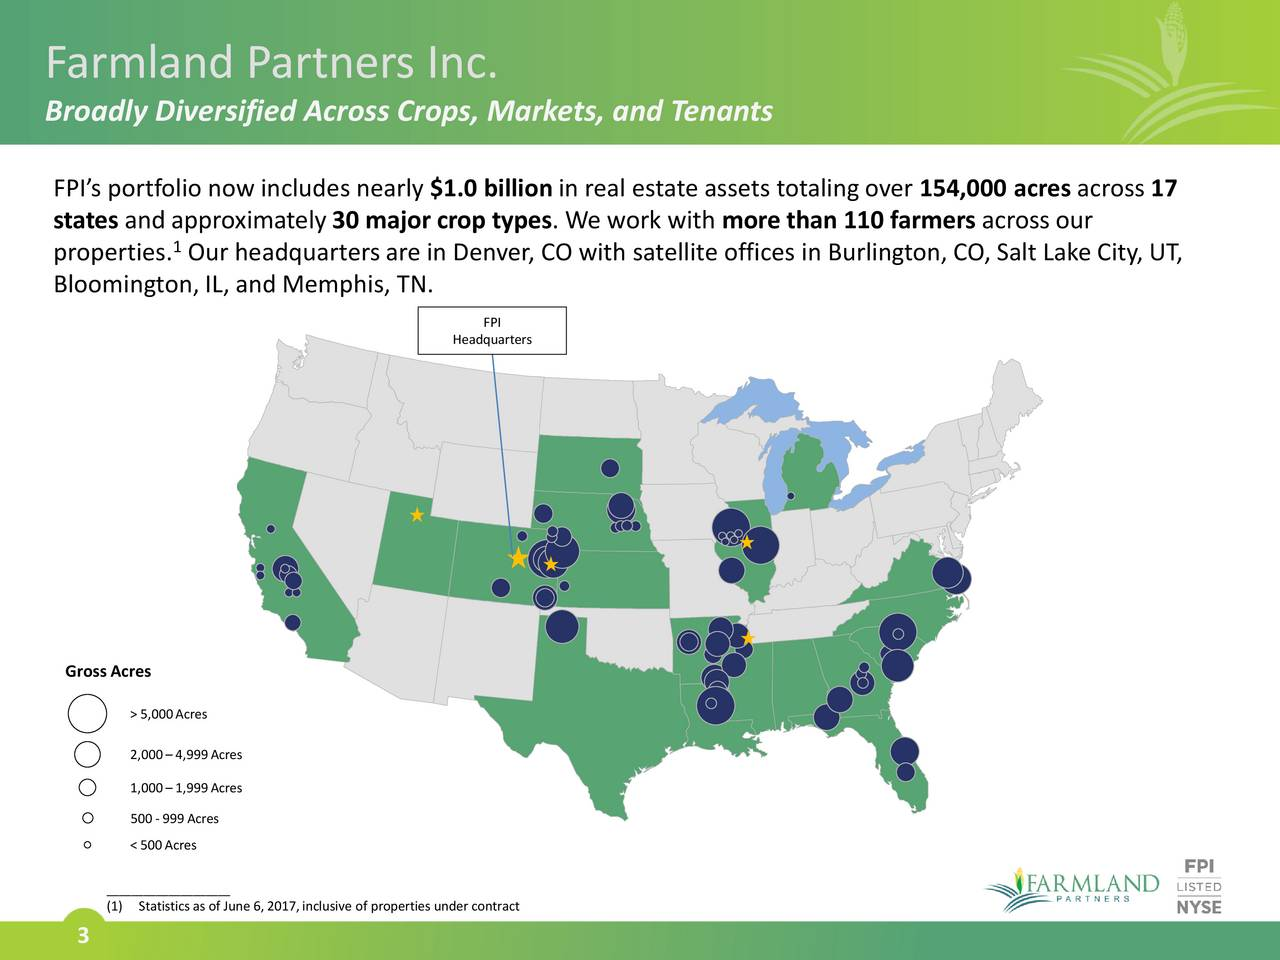 Broadly Diversified Across Crops, Markets, and Tenants FPIs portfolio now includes nearly $1.0 billion in real estate assets totaling over 154,000 acres across 17 states and approximately 30 major crop types. We work with more than 110 farmers across our 1 properties. Our headquarters are in Denver, CO with satellite offices in Burlington, CO, Salt Lake City, UT, Bloomington,IL, and Memphis, TN. FPI Headquarters Gross Acres > 5,000Acres 2,000 4,999Acres 1,000 1,999Acres 500- 999Acres < 500Acres ____________________ (1) Statistics as of June 6, 2017,inclusive of properties under contract 3